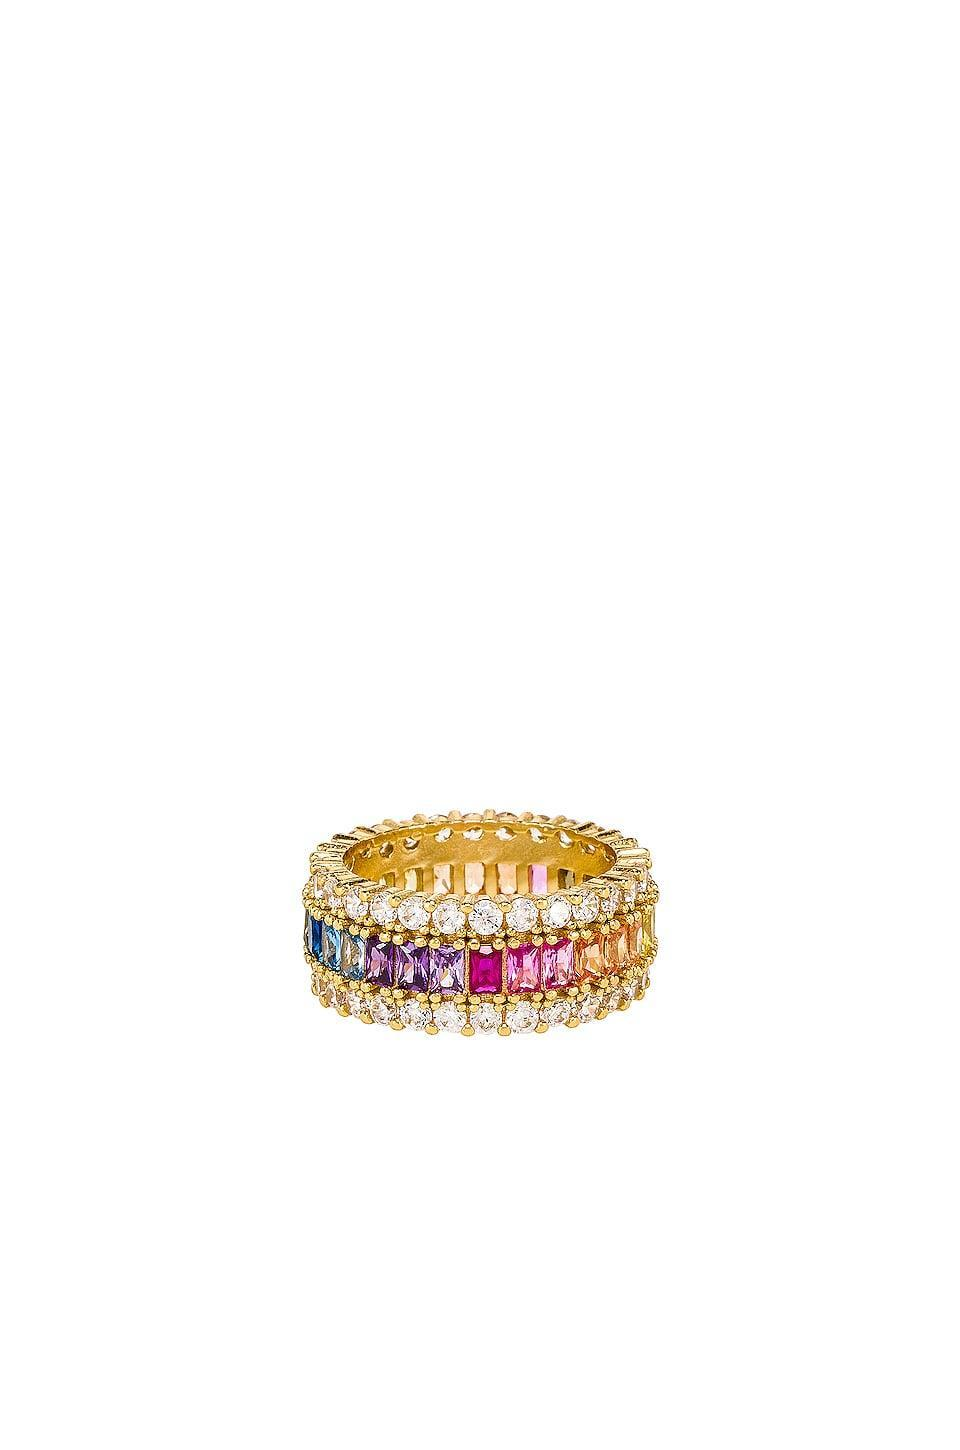 <p>We're loving this chunky <span>The M Jewelers NY Three Row Rainbow Ring</span> ($100). The rainbow baubles are so fun contrasted with the clear stones.</p>